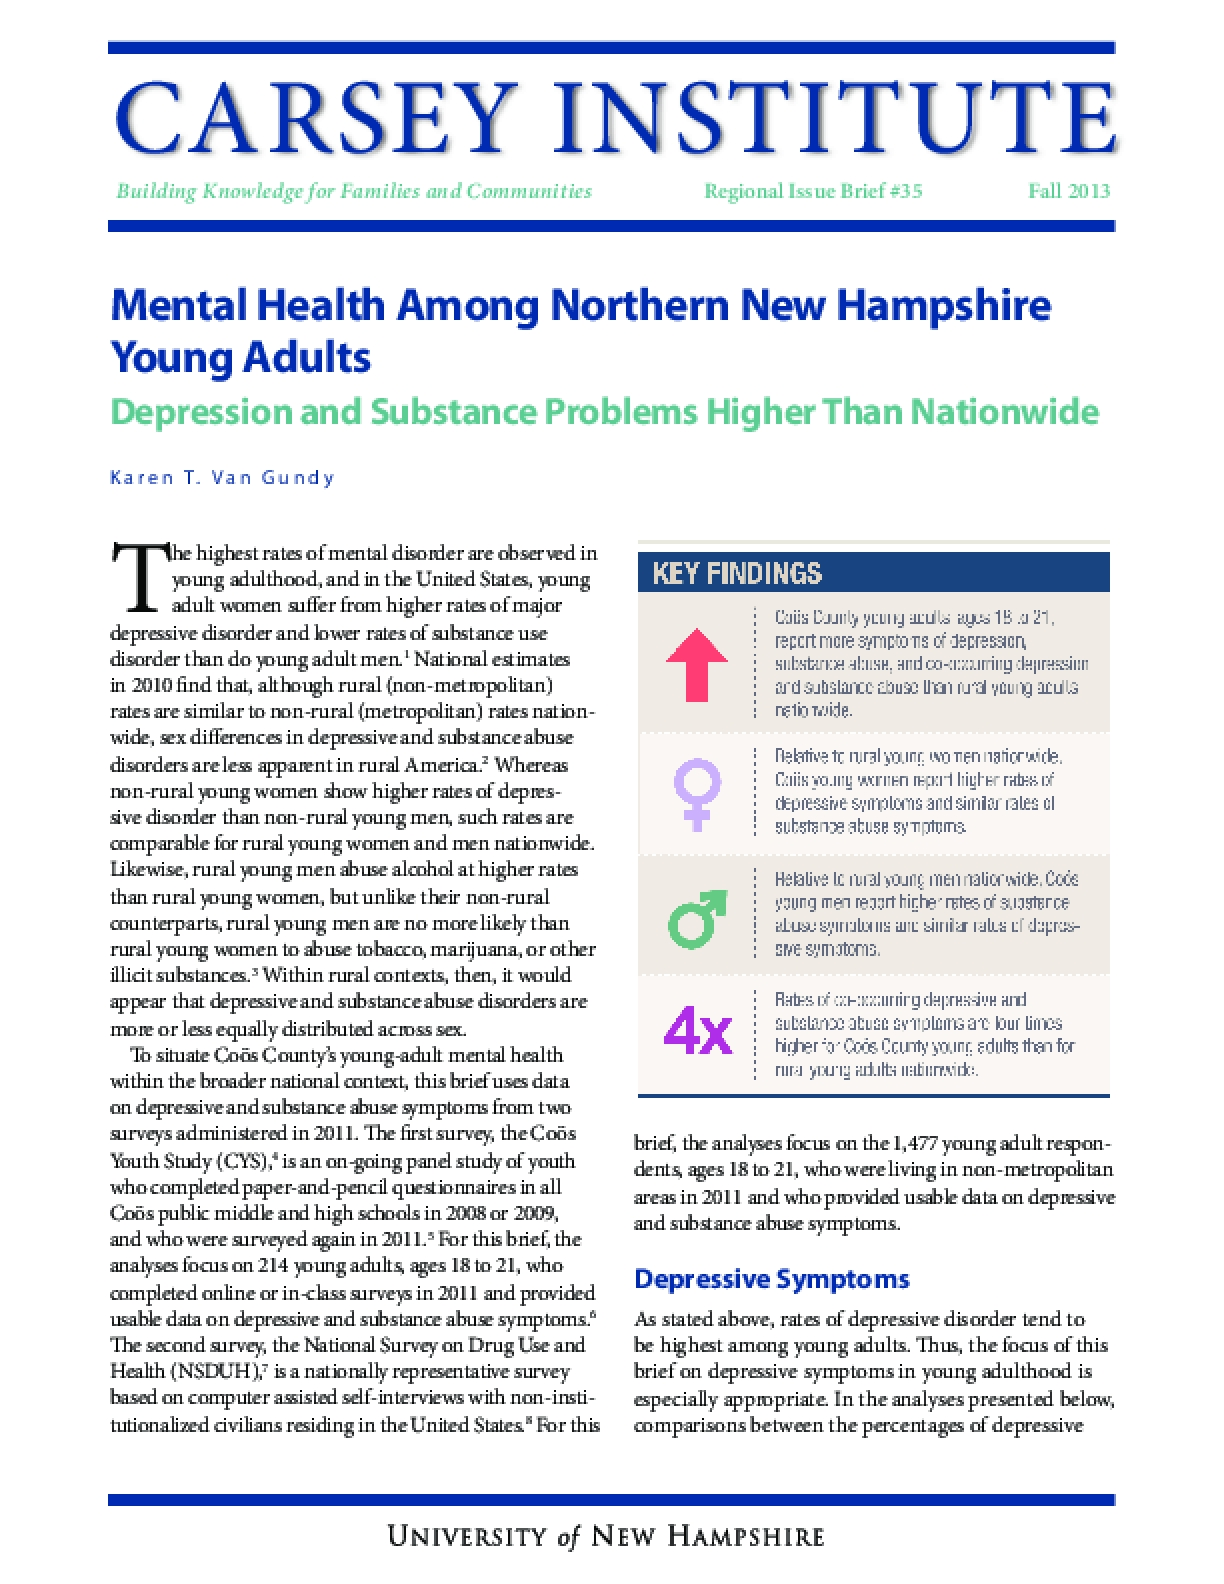 Mental Health Among Northern New Hampshire Young Adults